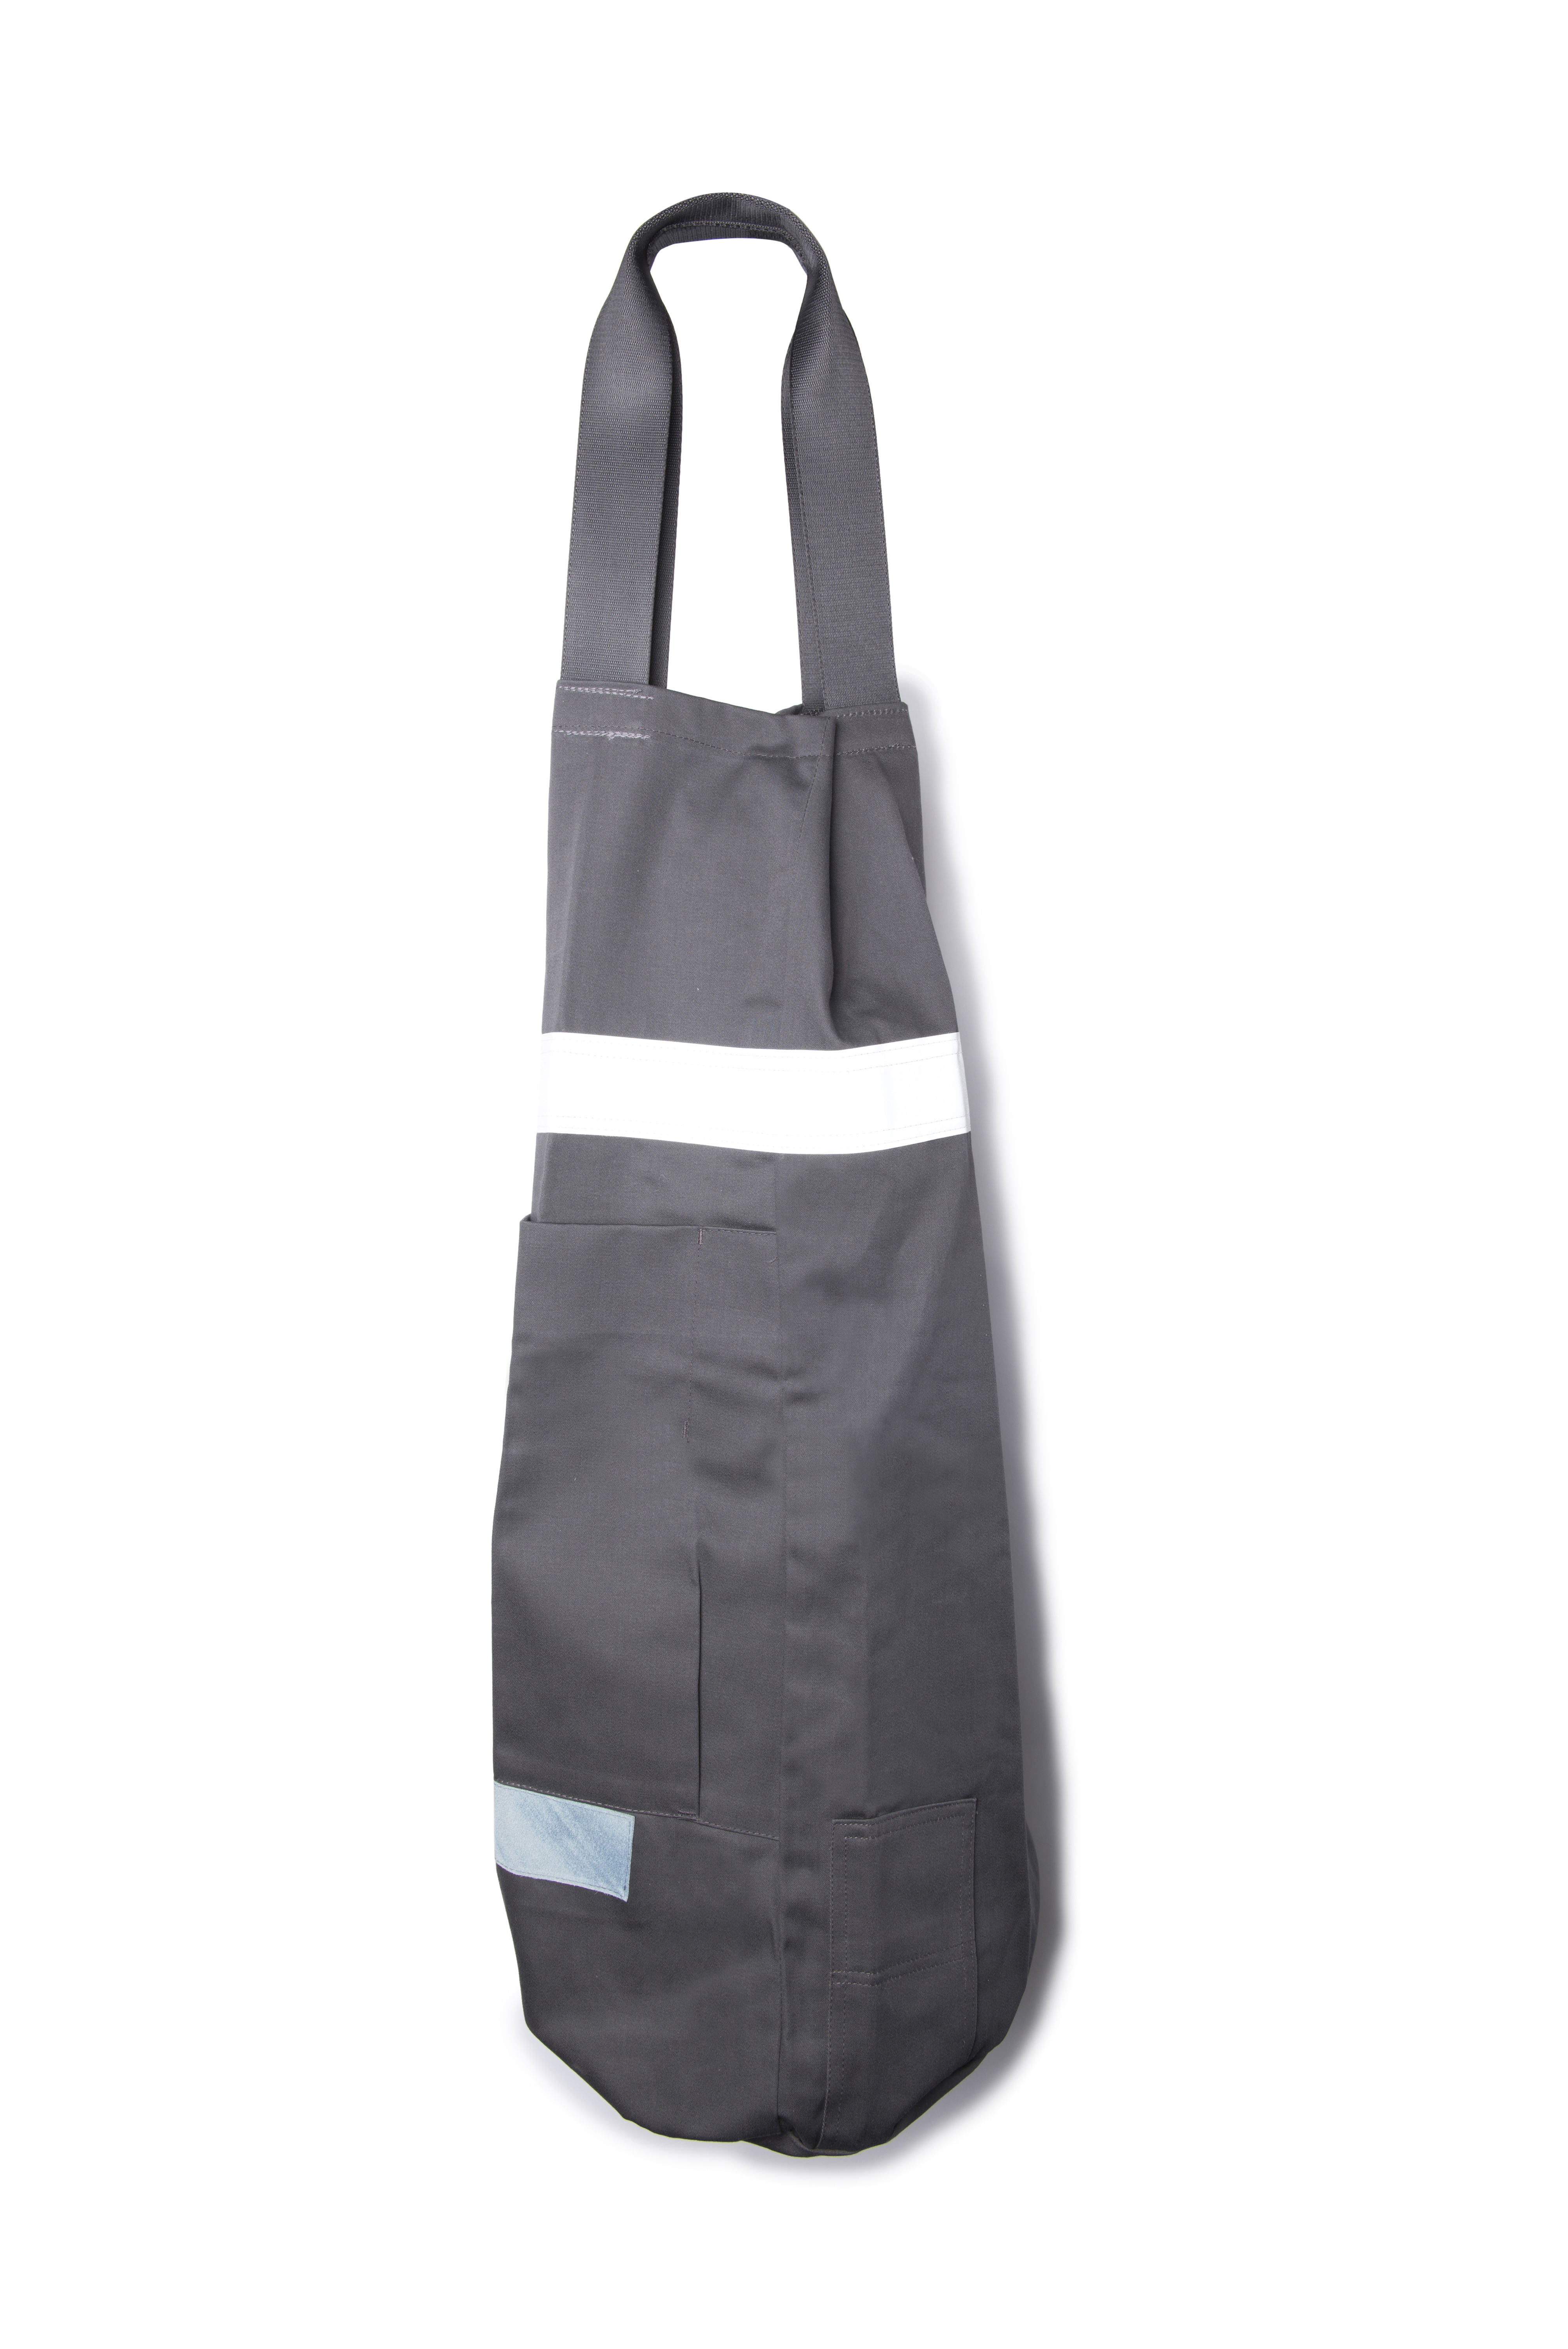 Home Ditty Bags Bag Old Gray Ii